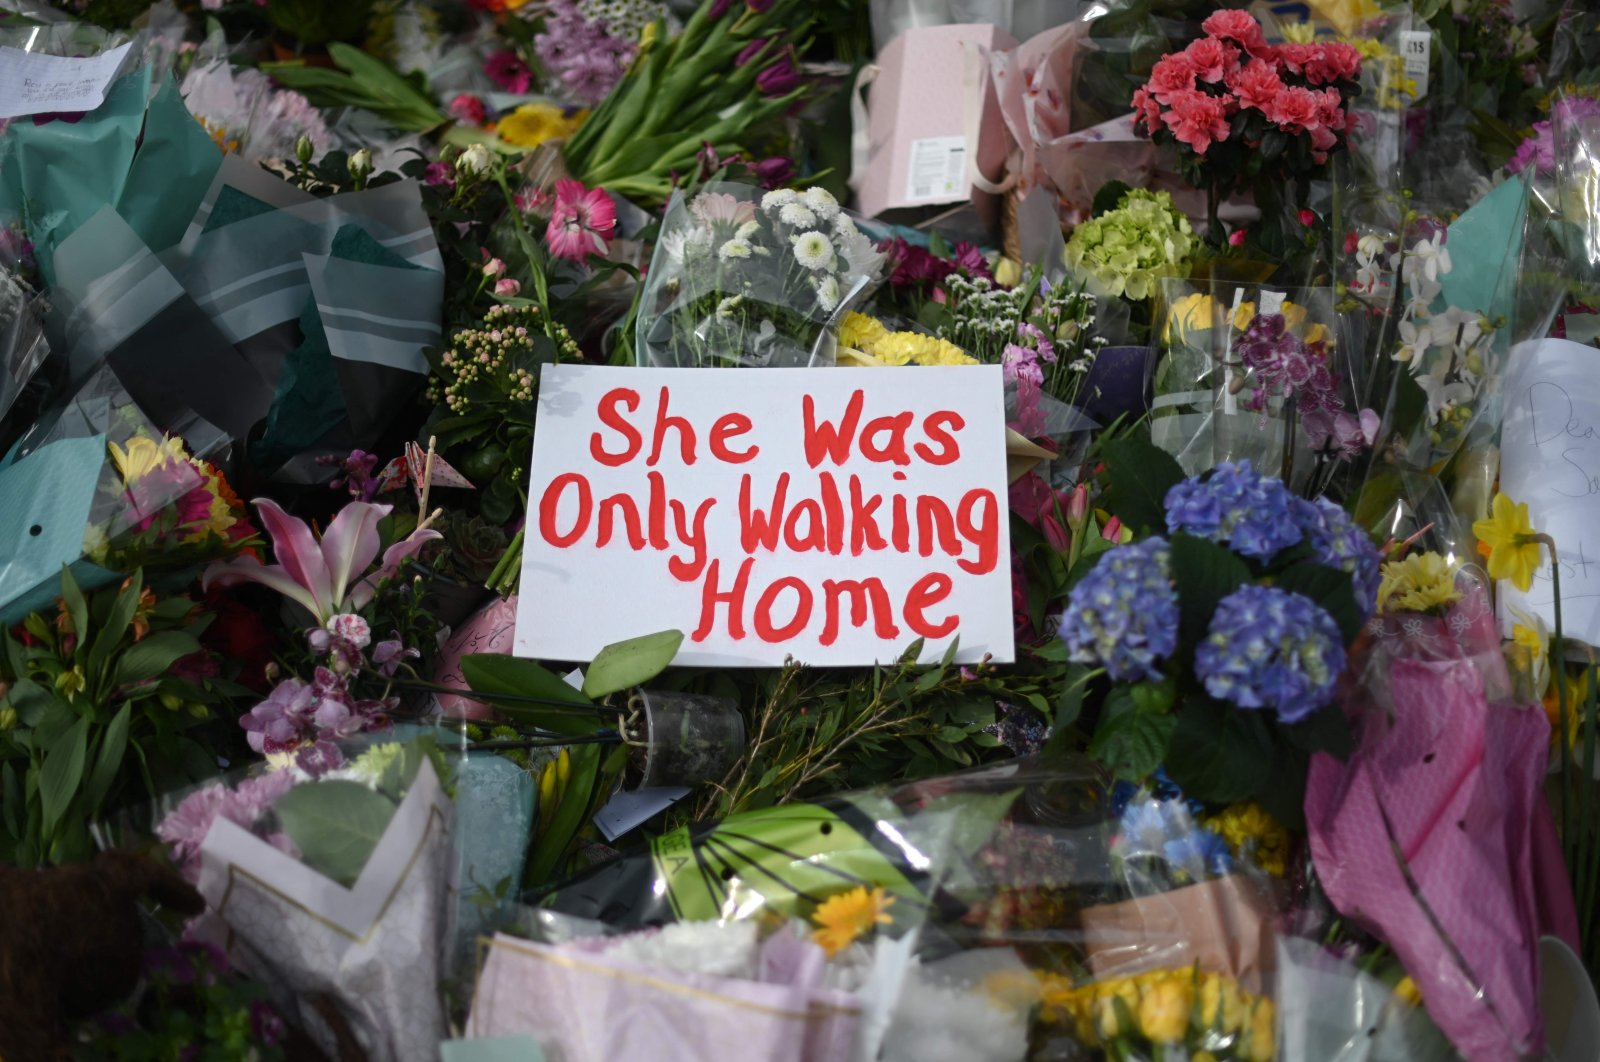 Messages and floral tributes left by well-wishers to honor victim Sarah Everard at the bandstand on Clapham Common in south London, U.K., March 14, 2021. (AFP Photo)